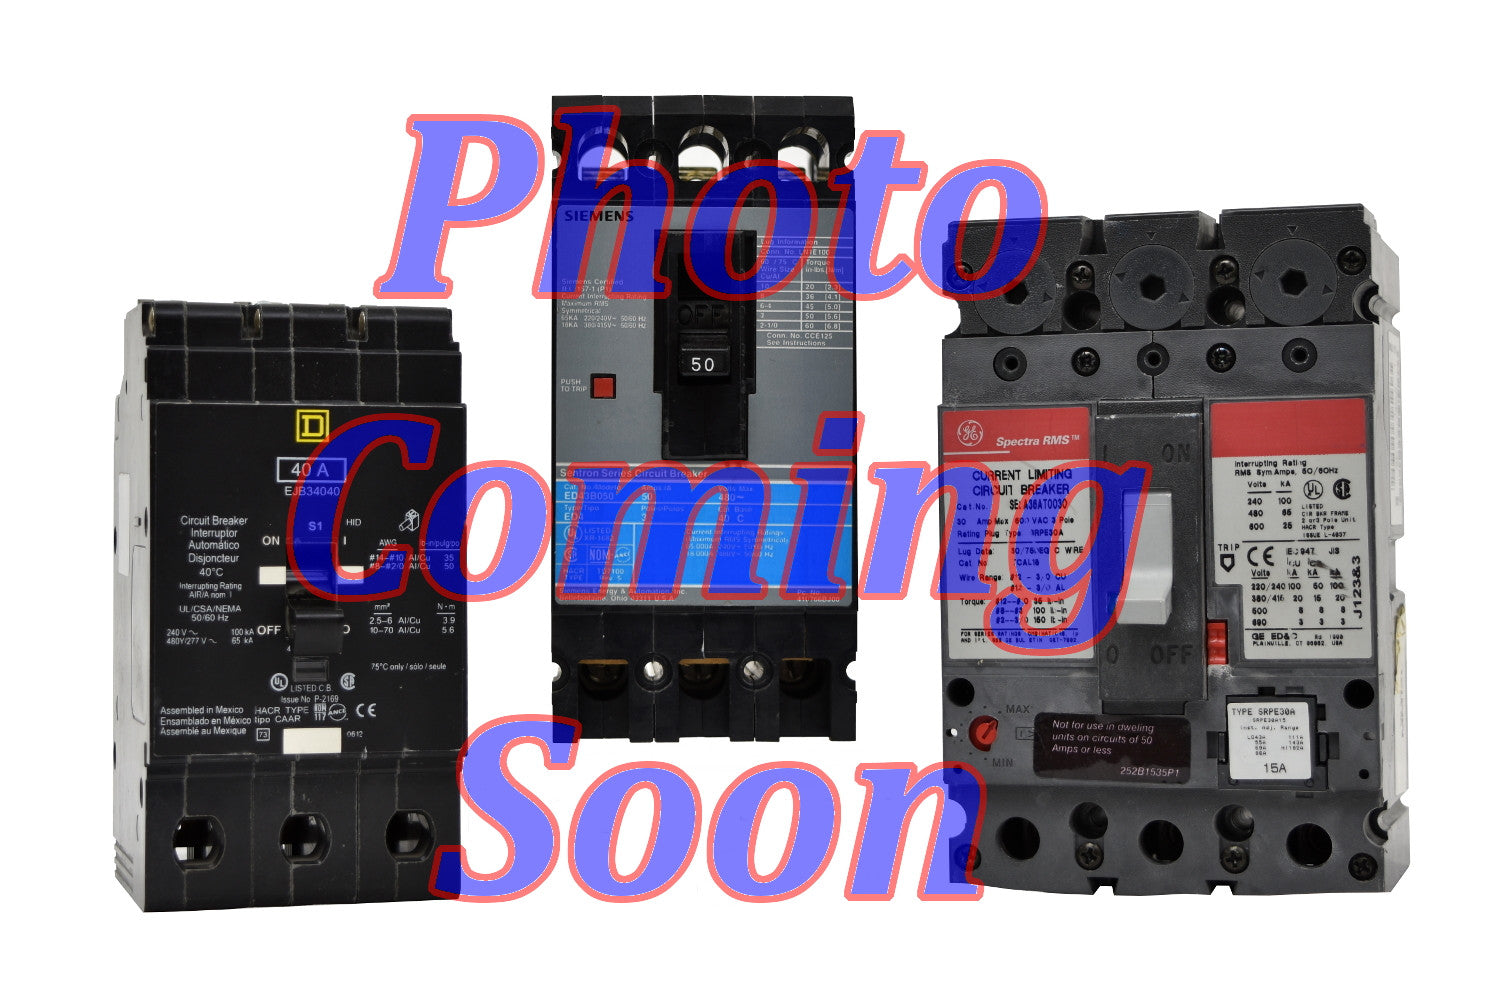 General Electric FCV36TE090R1 Circuit Breakers